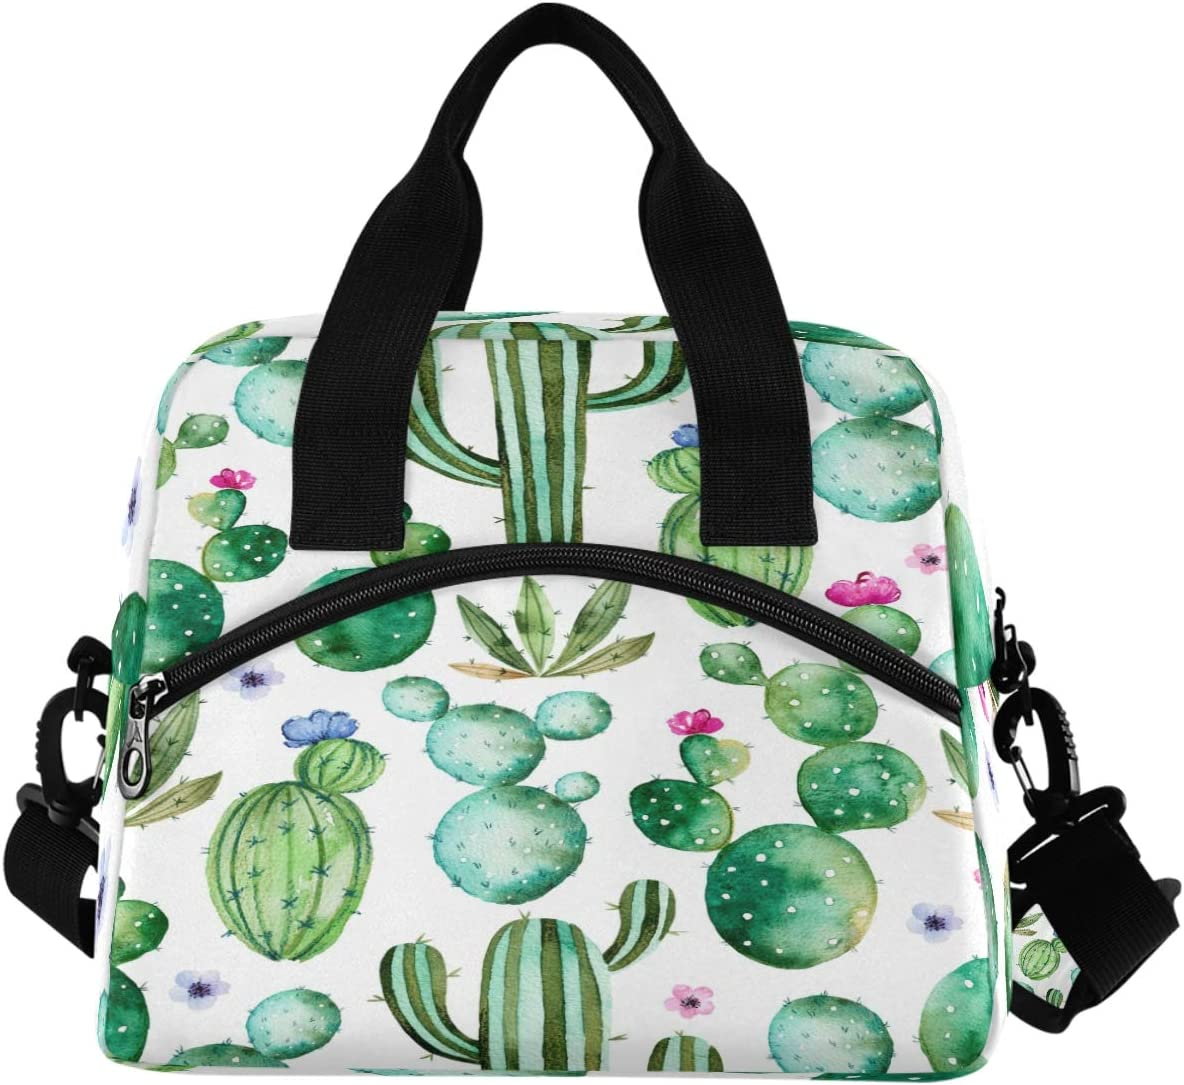 Watercolor Cactus Lunch Box Tropical Plant Cacti Flowers Lunch Bag Insulated Freezable Lunch Tote Kit Thermal Cooler for Office Picnic Travel Portable Reusable Handbag